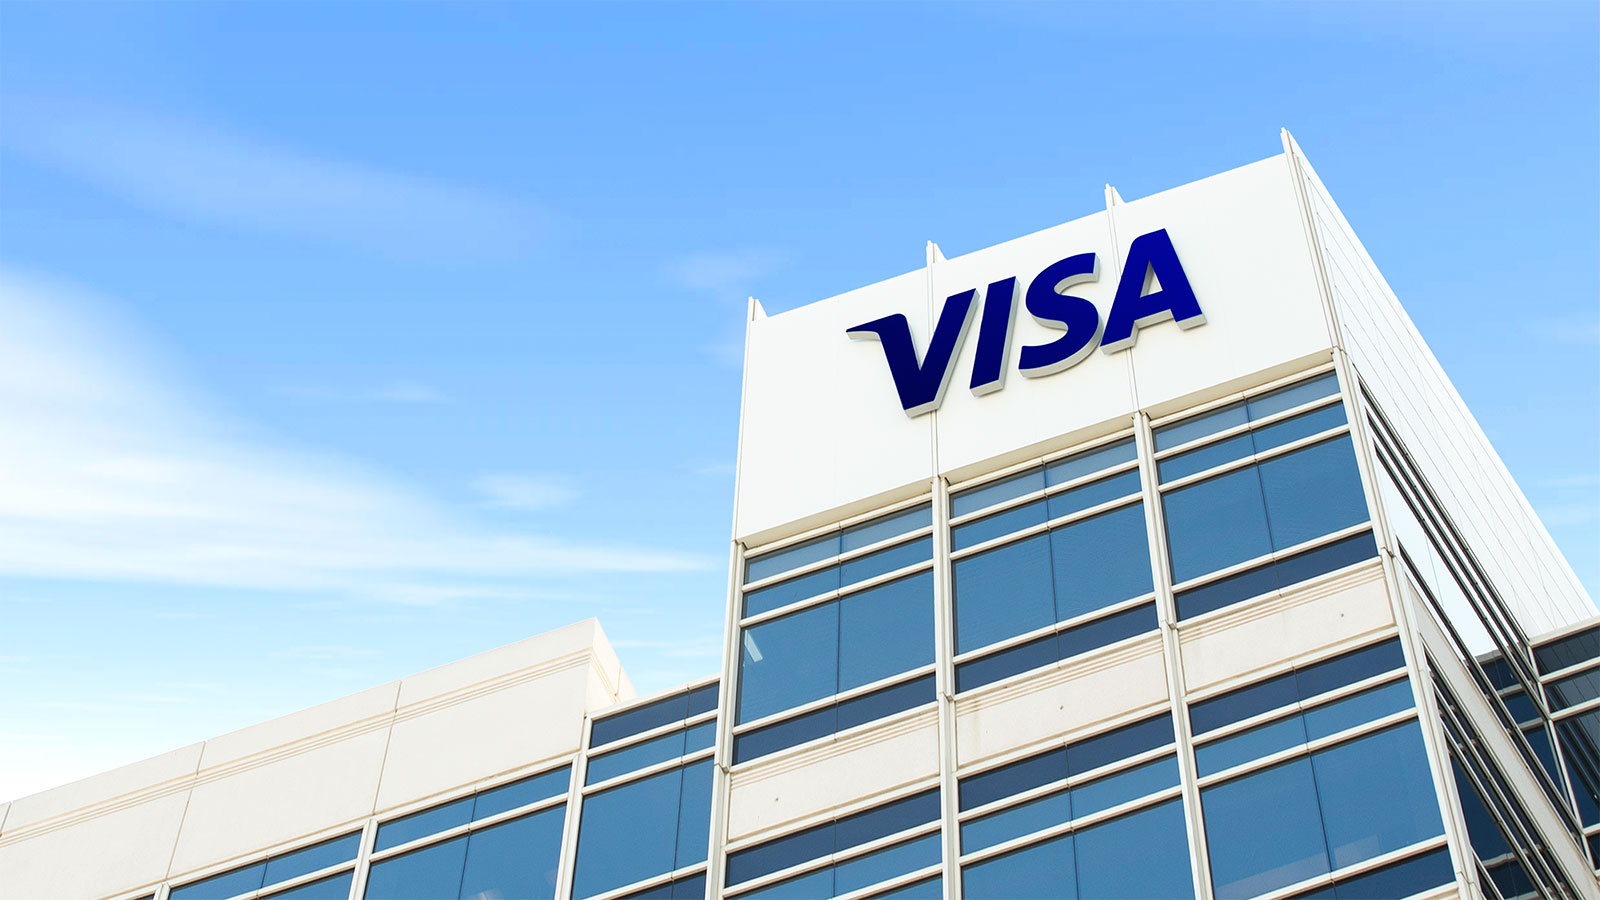 How Visa Acquired Fintech Startup Plaid For $5.3 Billion